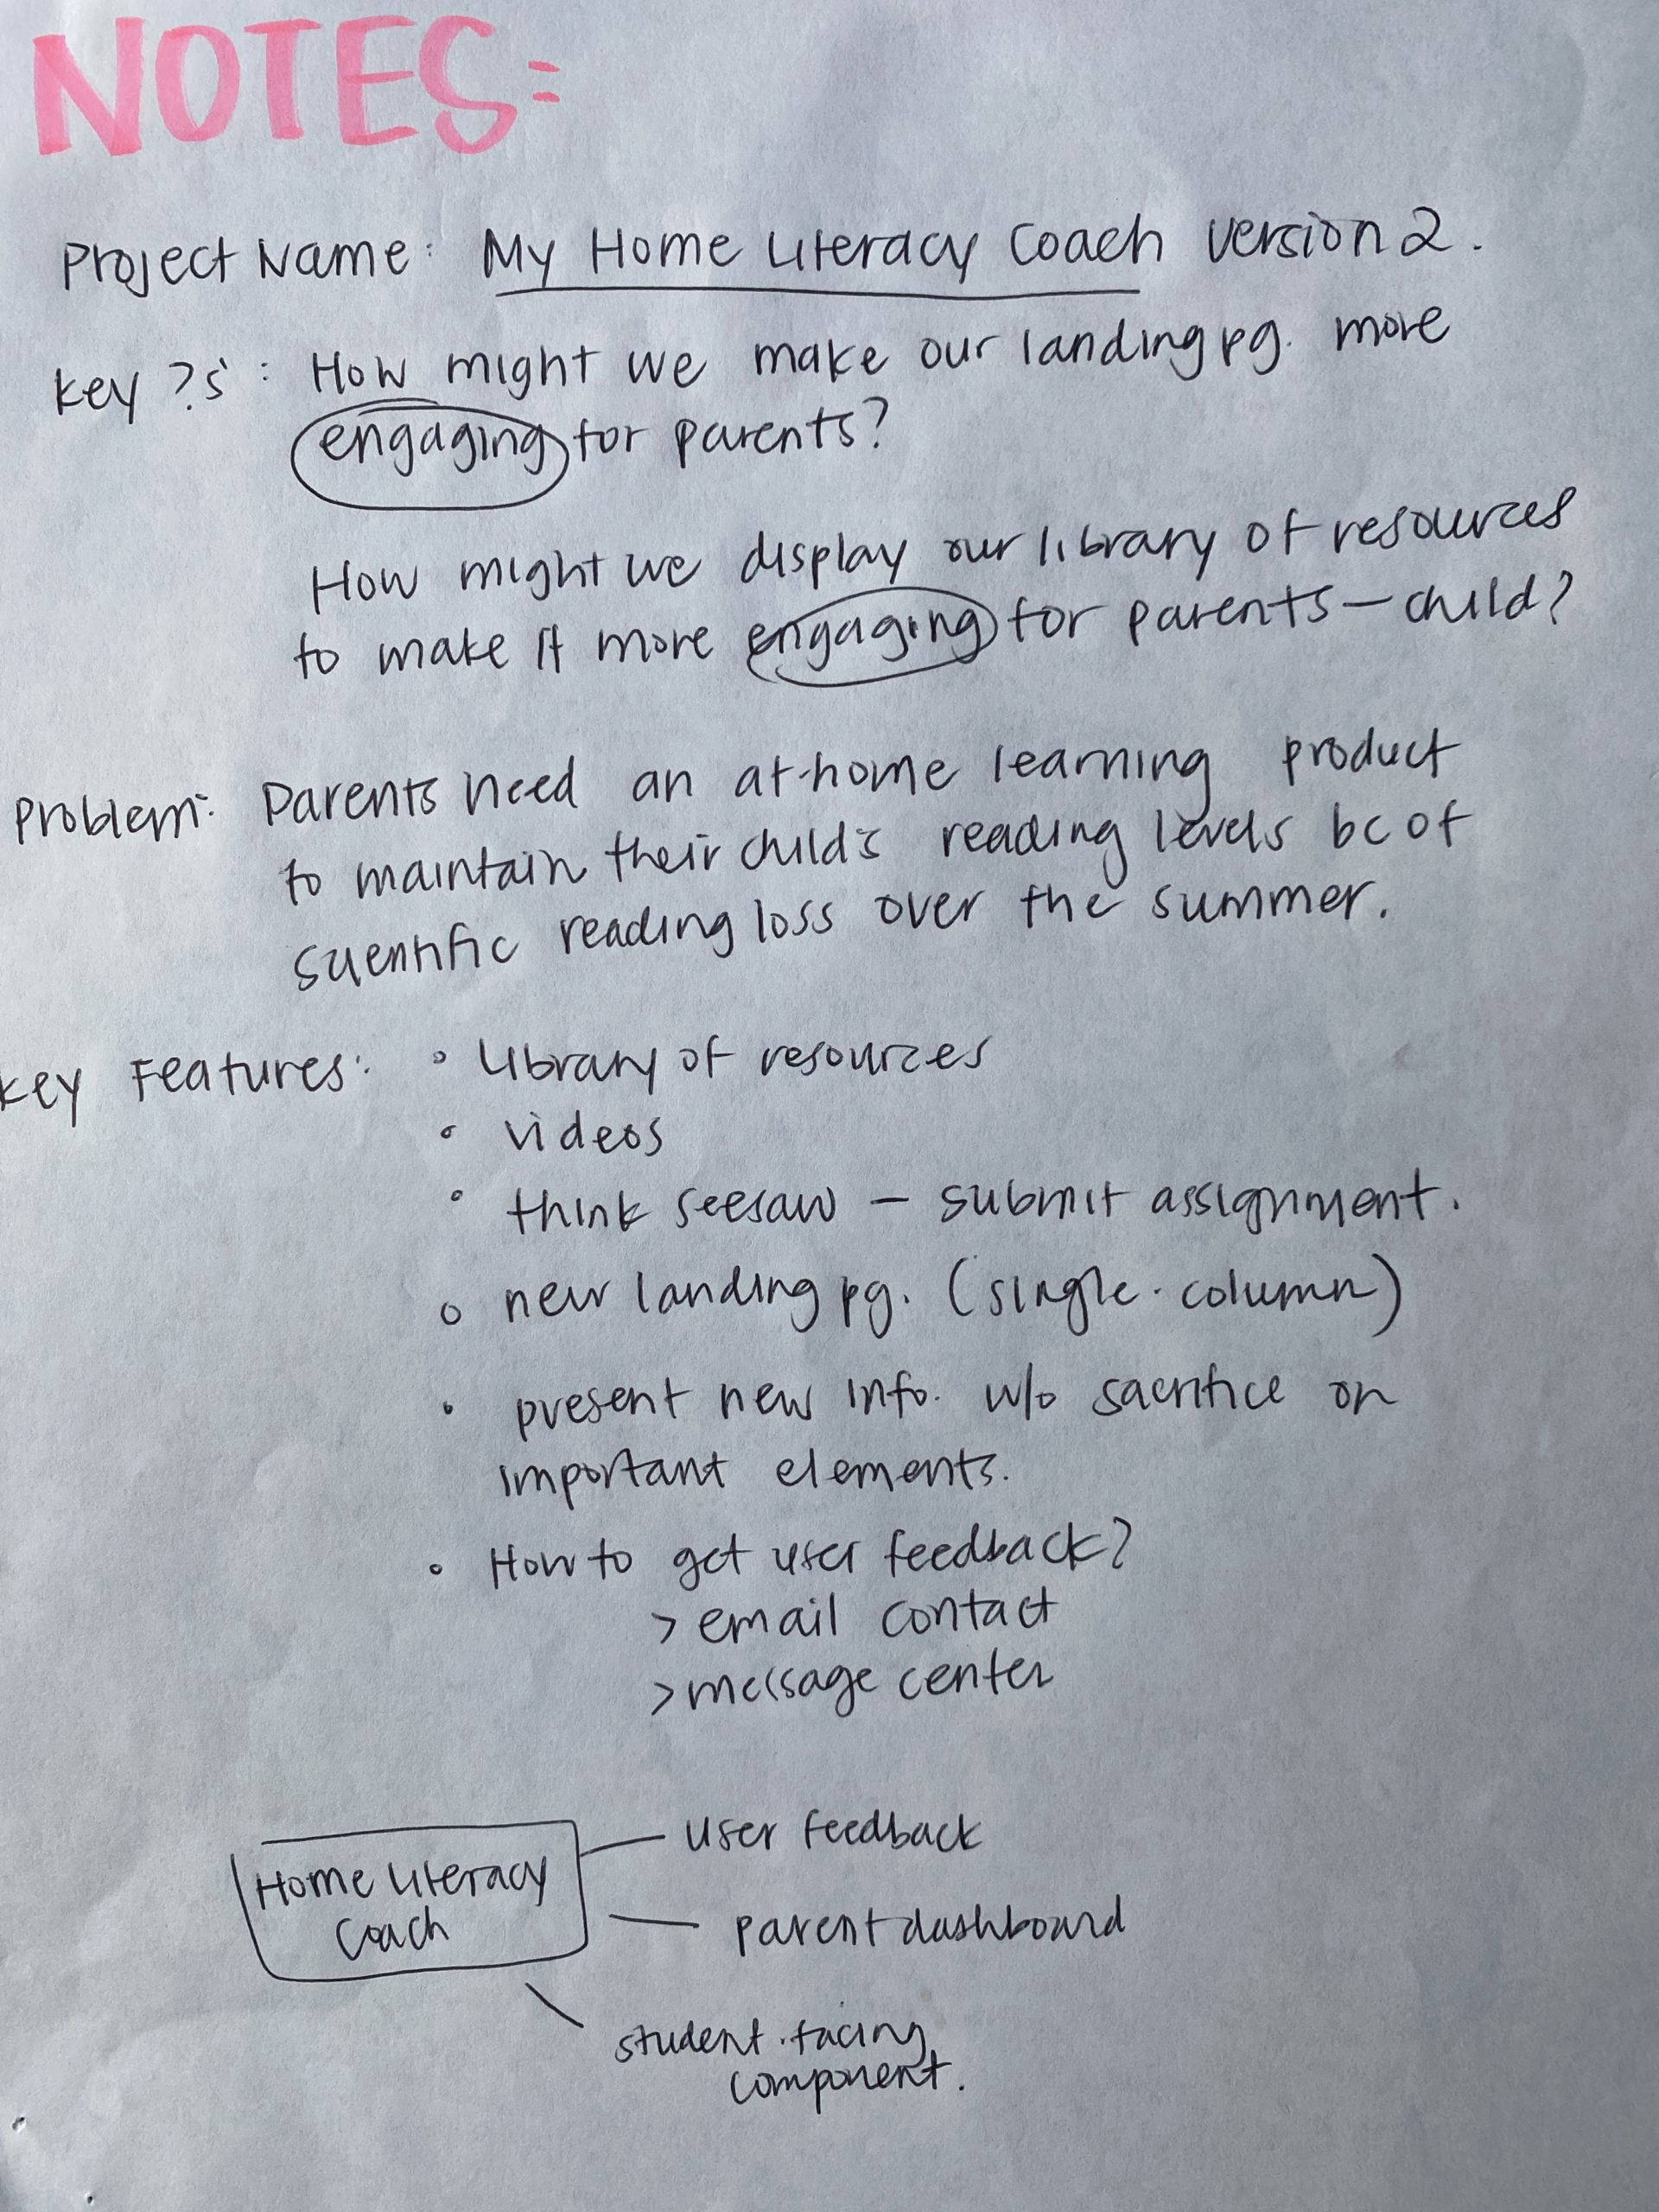 MHLC Notes